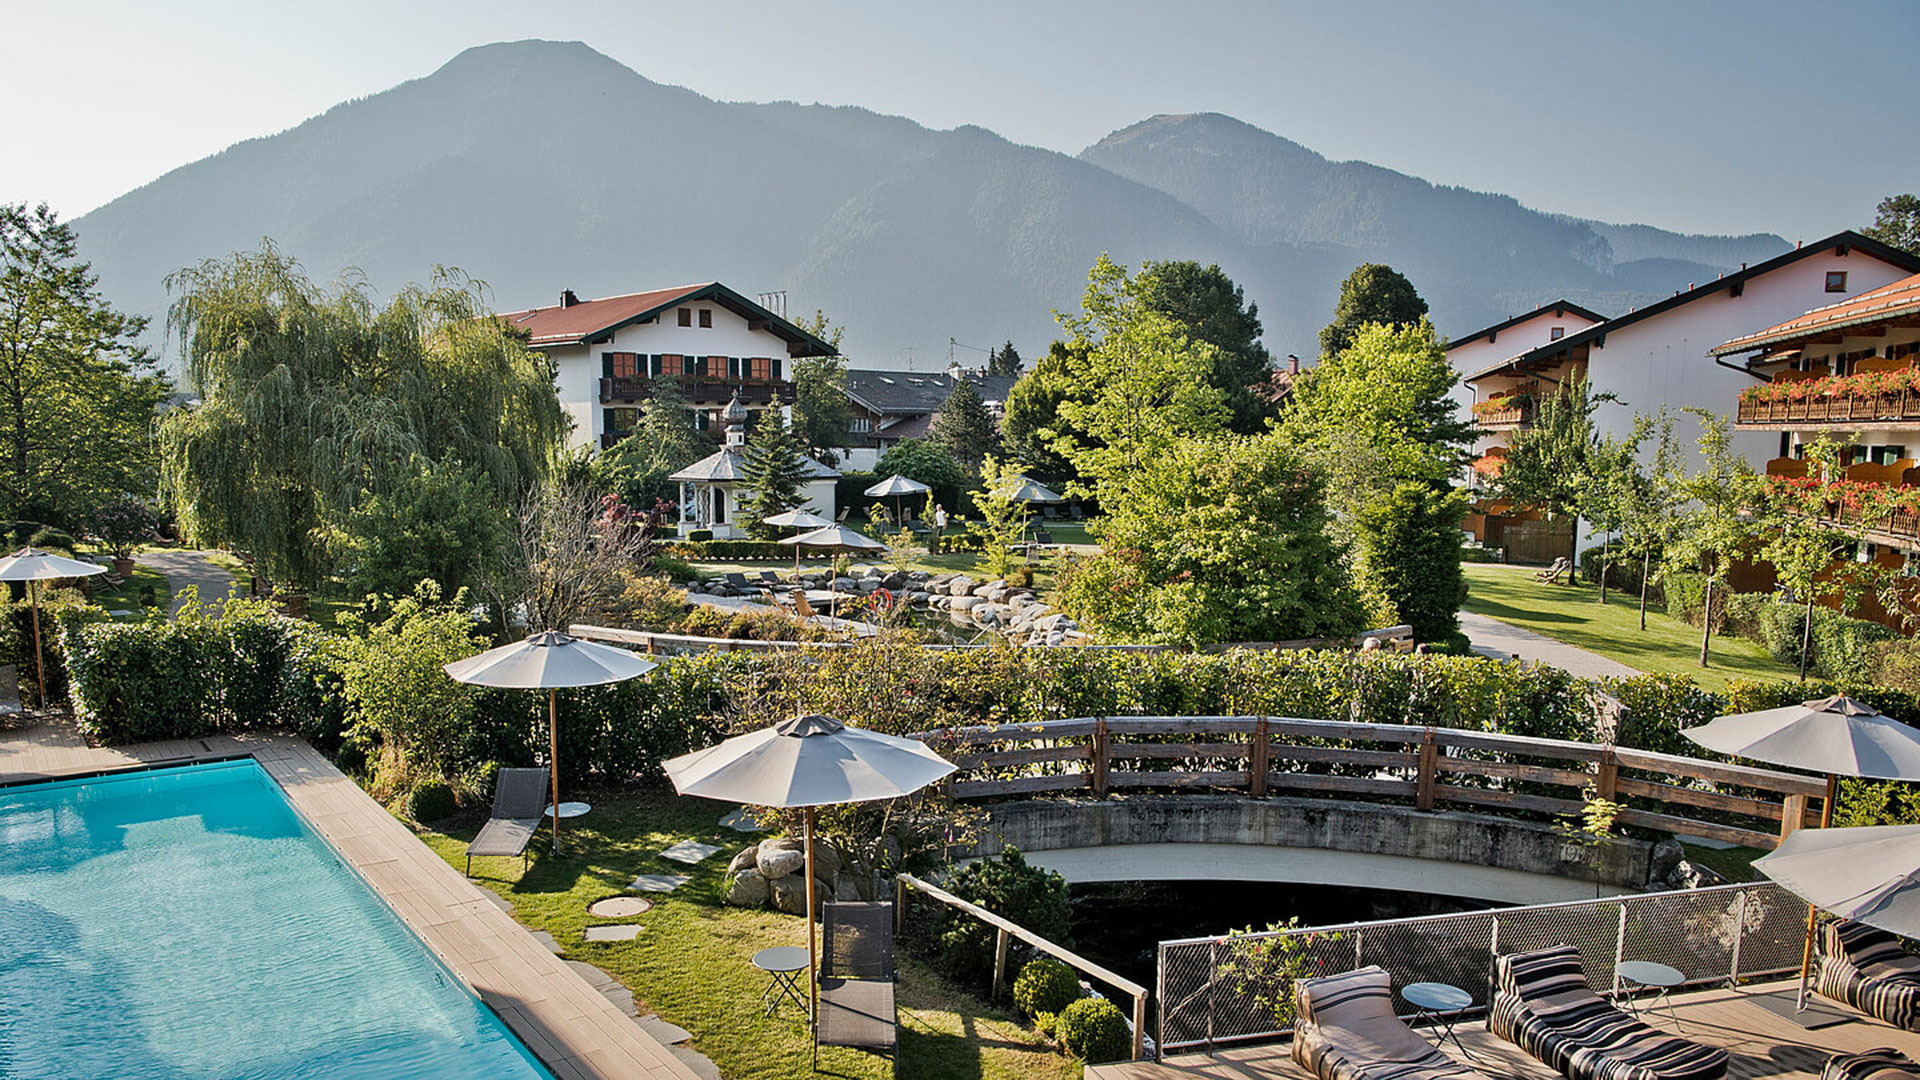 Hotel Bachmair Weissach SPA & Resort. Luxusreisen